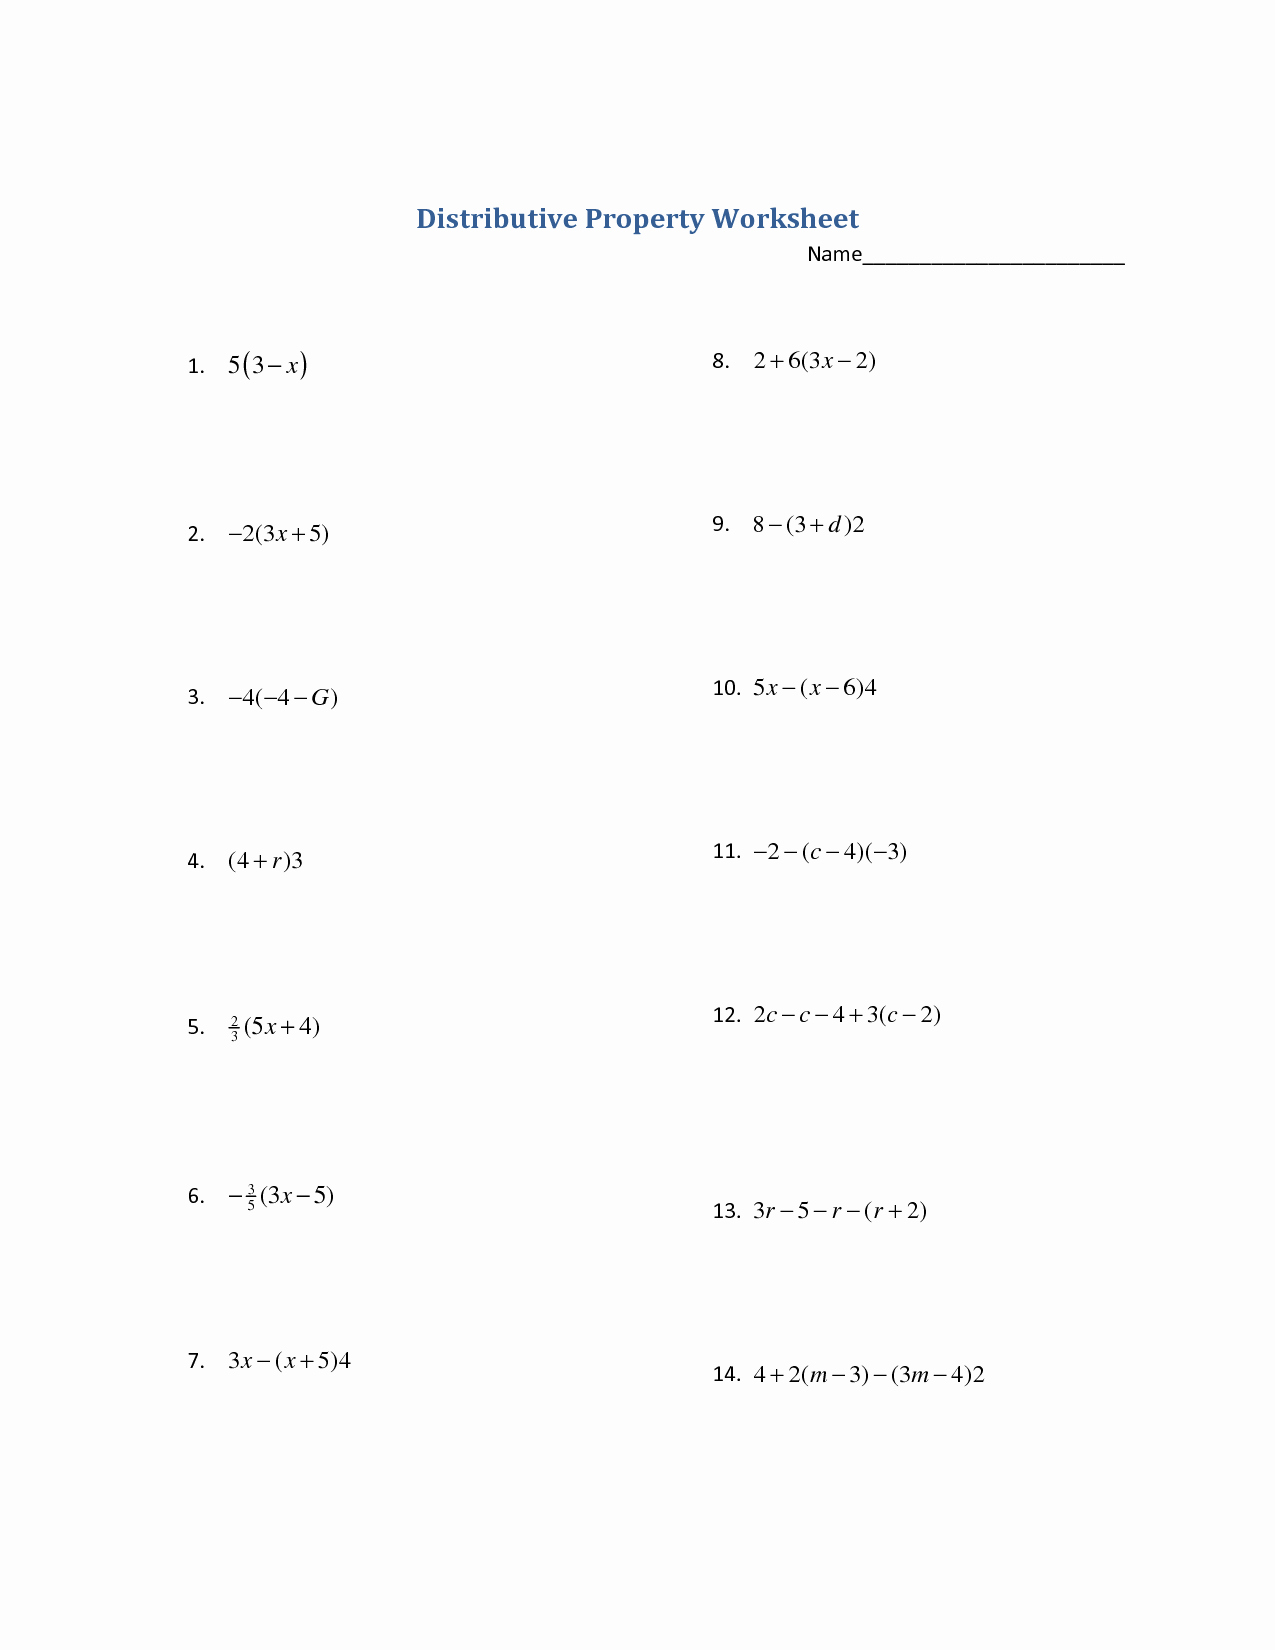 Distributive Property with Variables Worksheet Elegant 15 Best Of Distributive Property Worksheets Grade 7